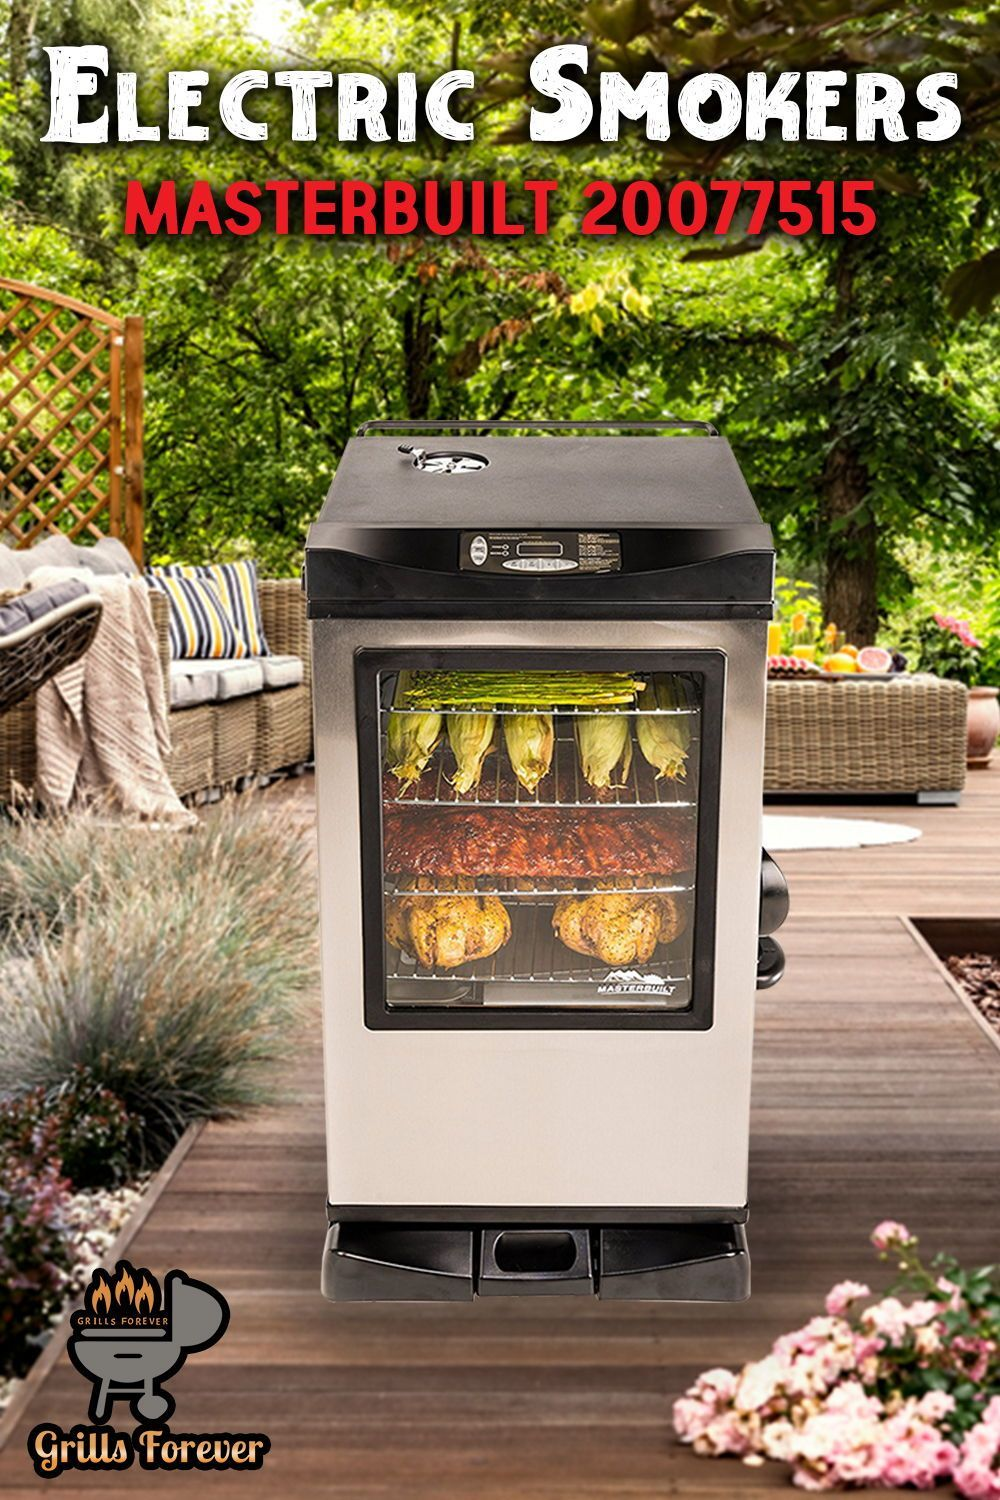 Best Electric Smoker Reviews Smokers Consumer Reports 2019 Top Rated